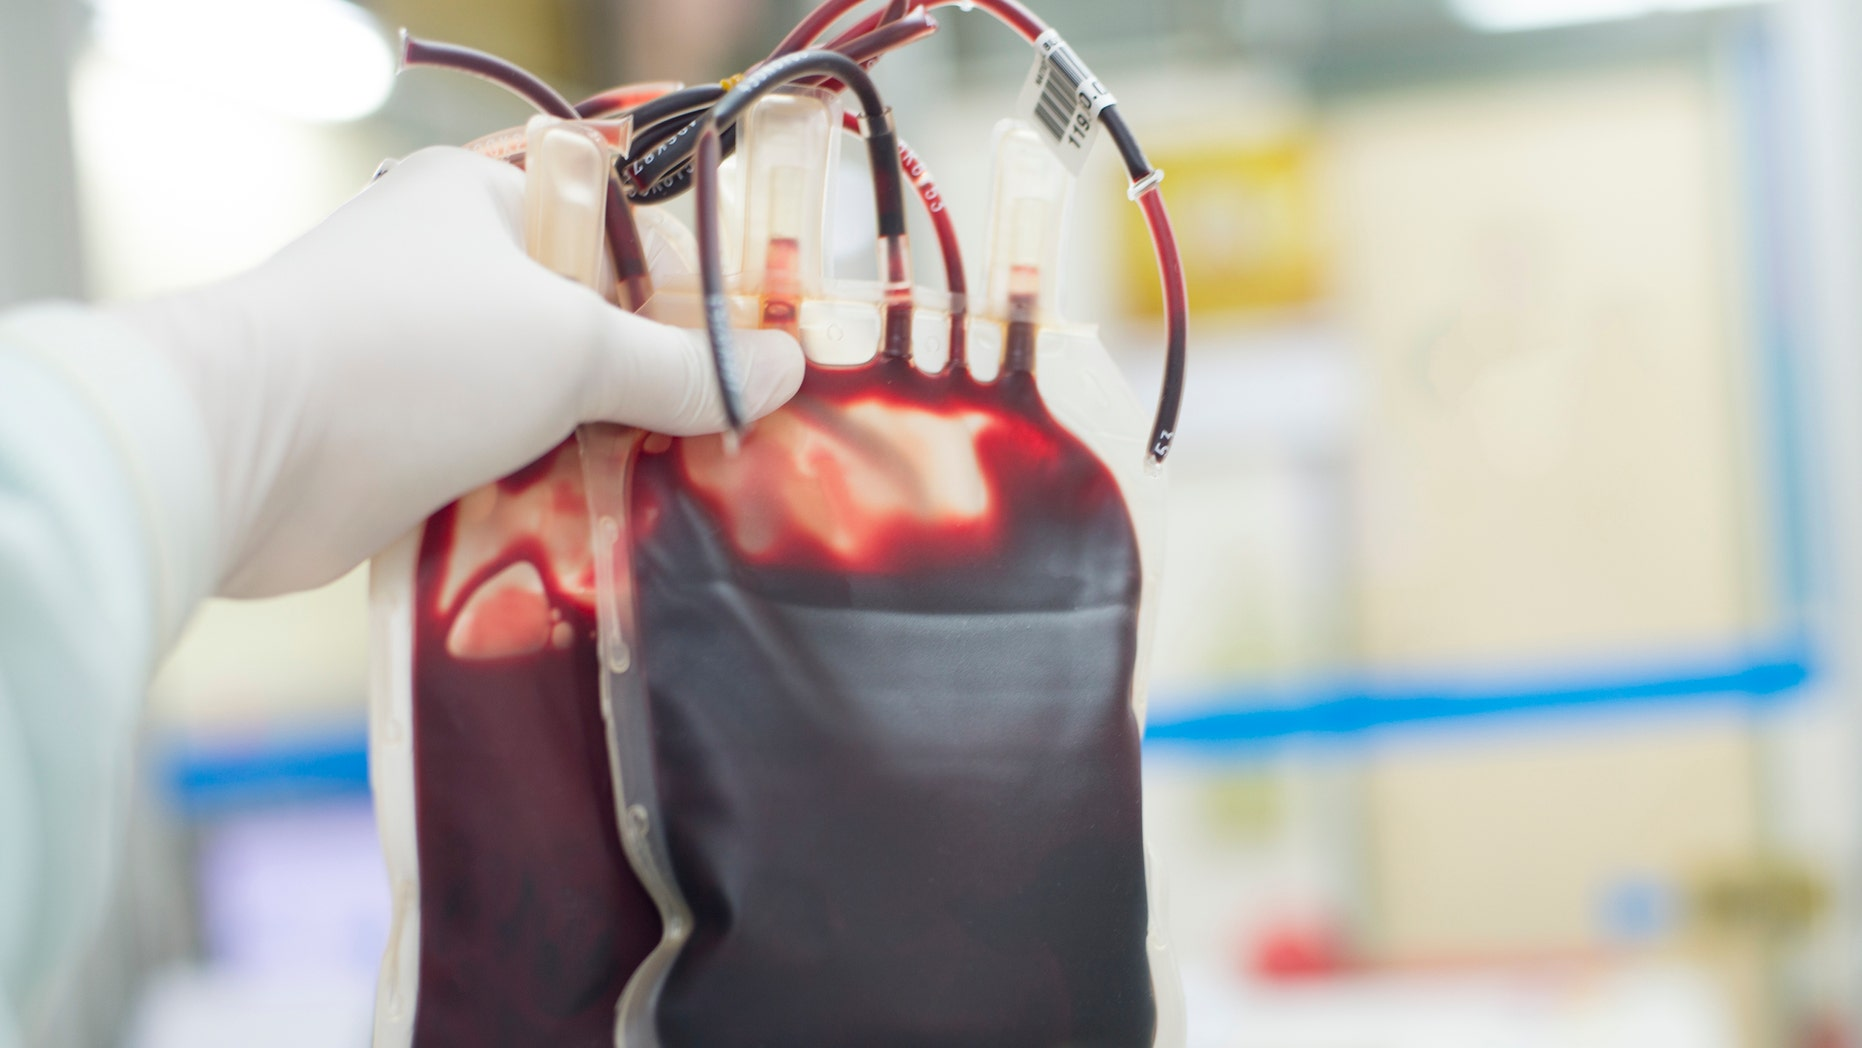 FDA Warns Against Blood Transfusions From Young Donors as Anti-Aging Treatment